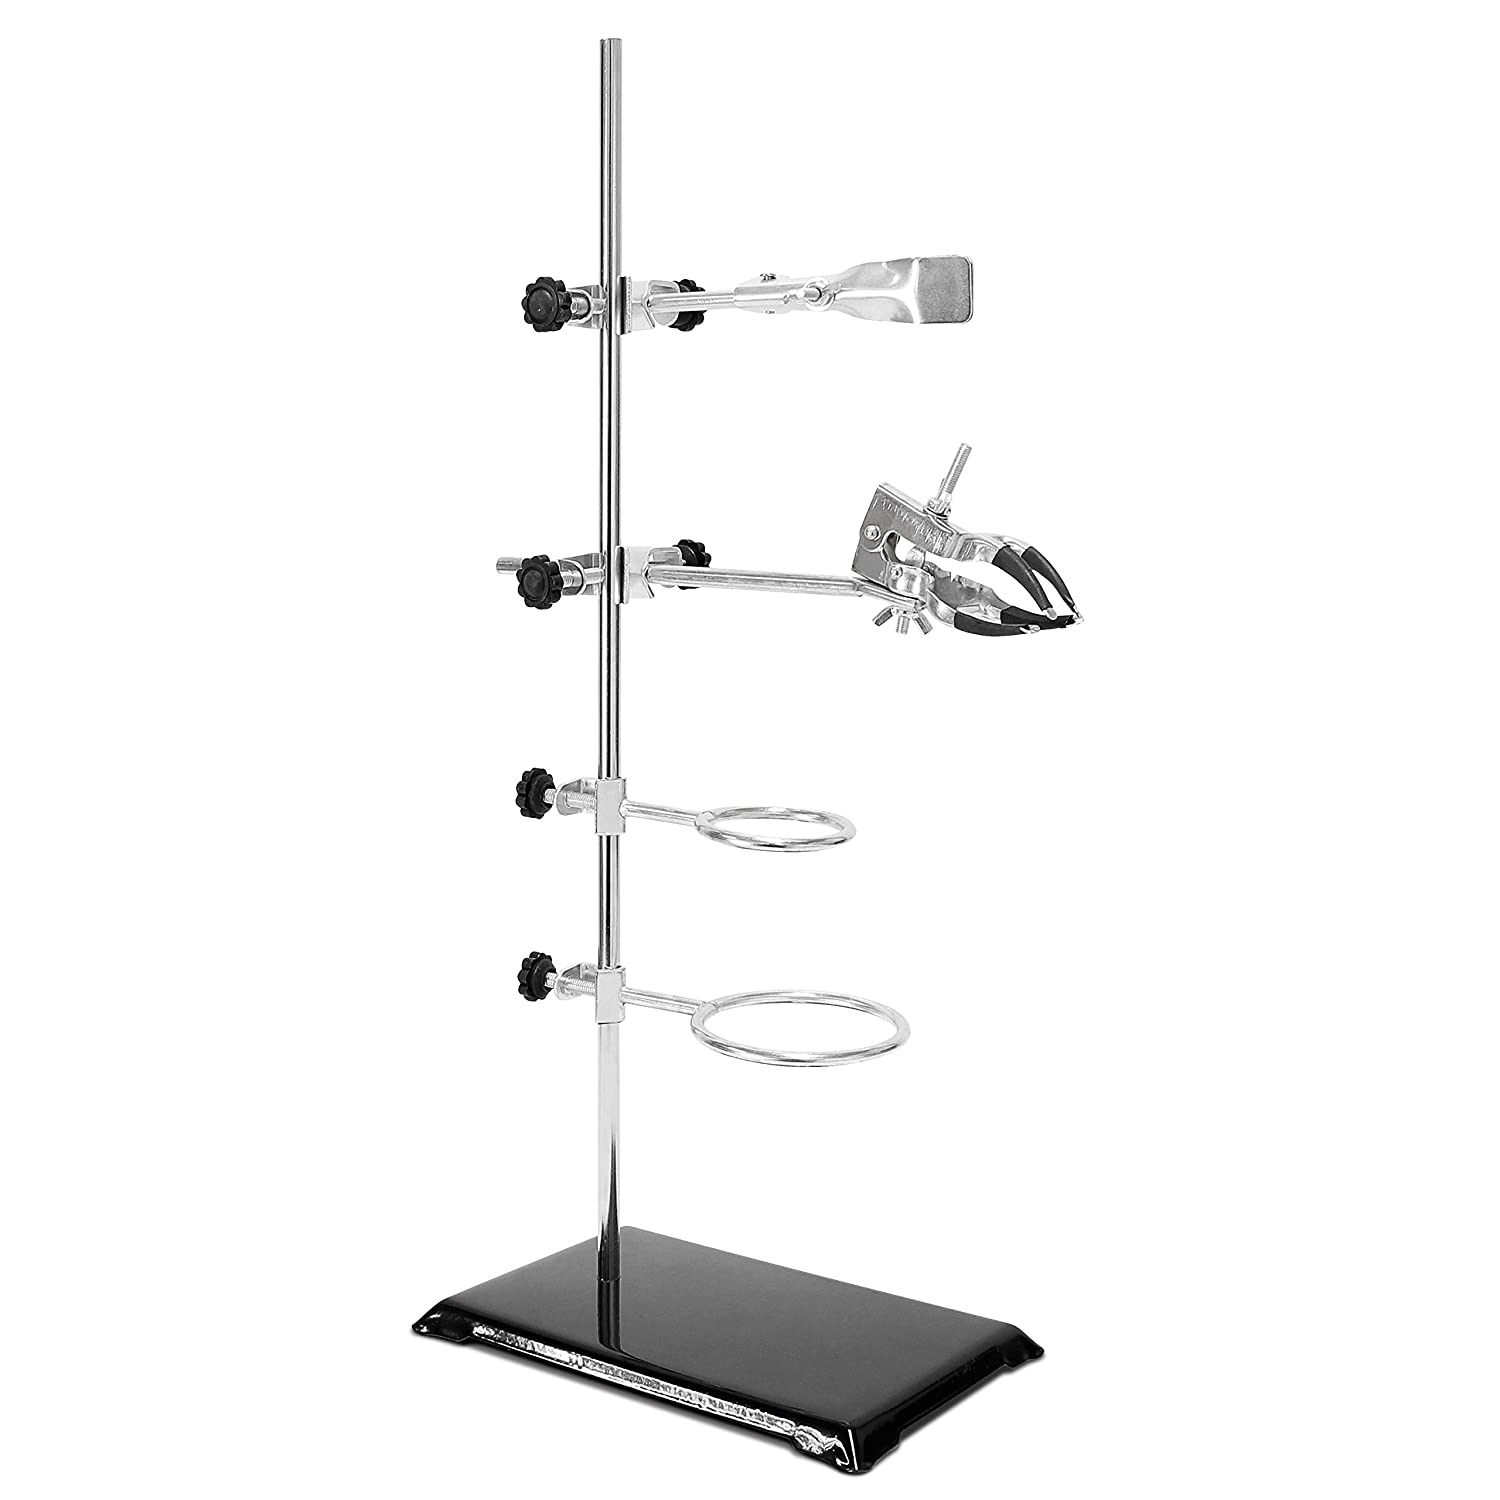 Rod Lab Support Stand Dia 3.15 inch Flask Clamp Length 23.6 inch 3 Resort Rings Dia2.2//3.0 inch 8.7inchx5.6inch Wisamic Laboratory Retort Stand A-3 Lab Clamp Retort Dia 1.77 inch